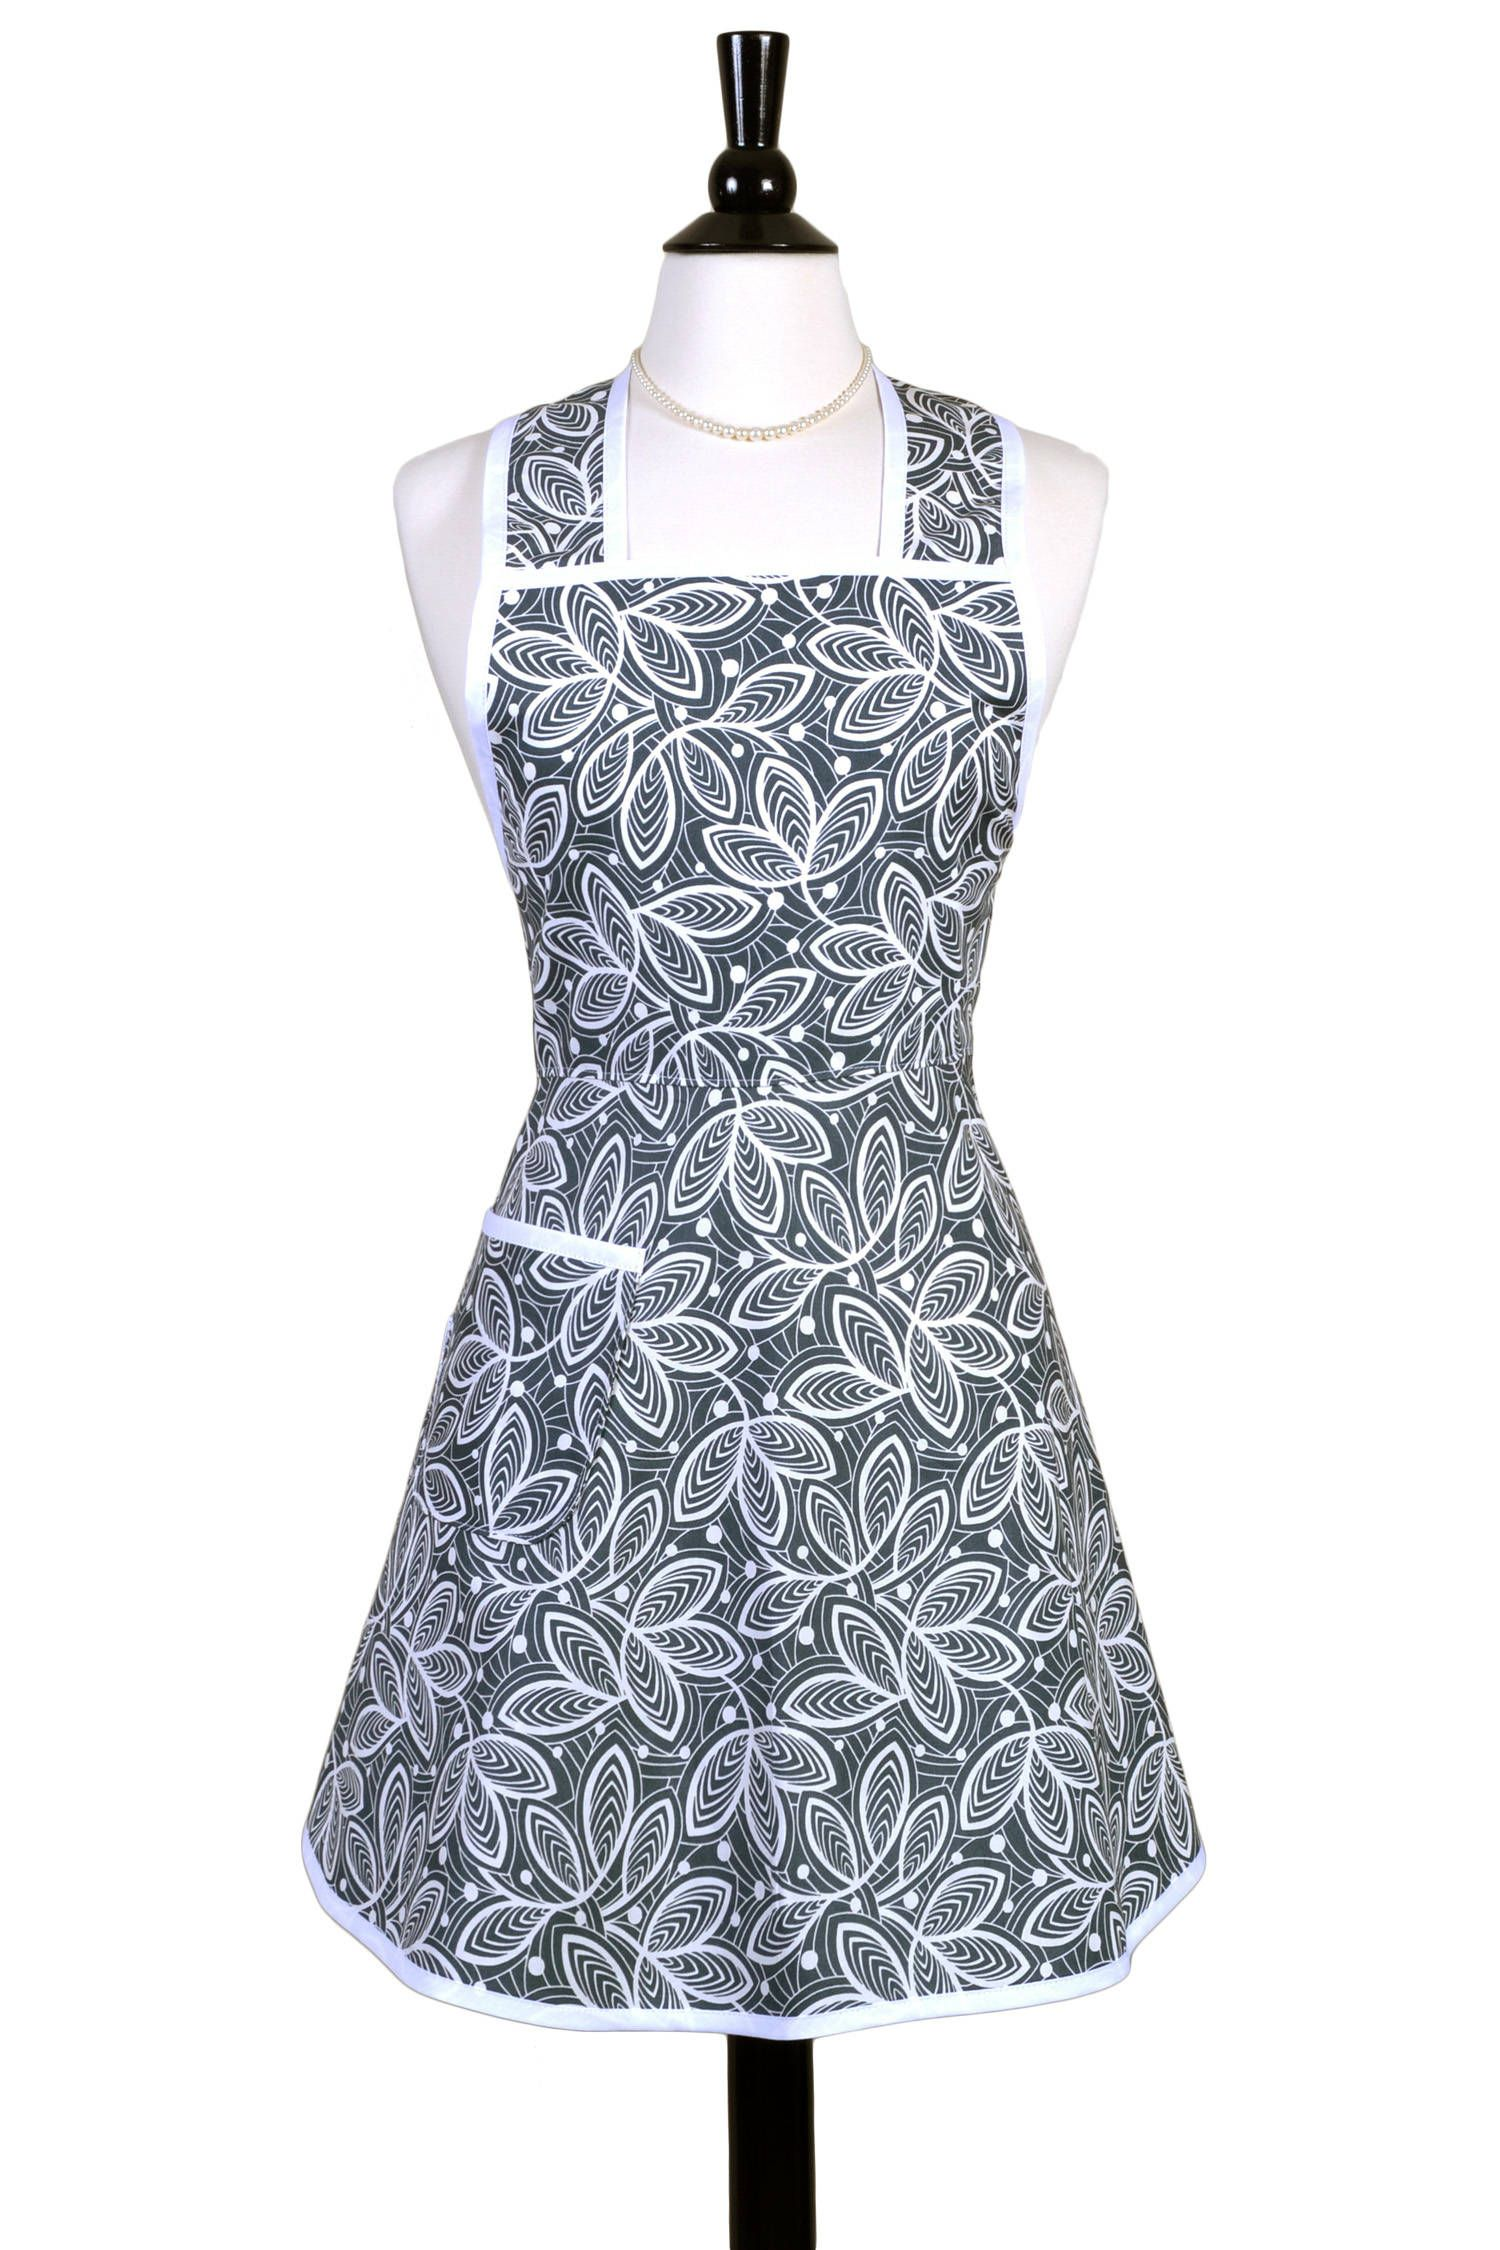 Womens Vintage Apron with Pocket in Gray Leaves 50s Retro Kitchen